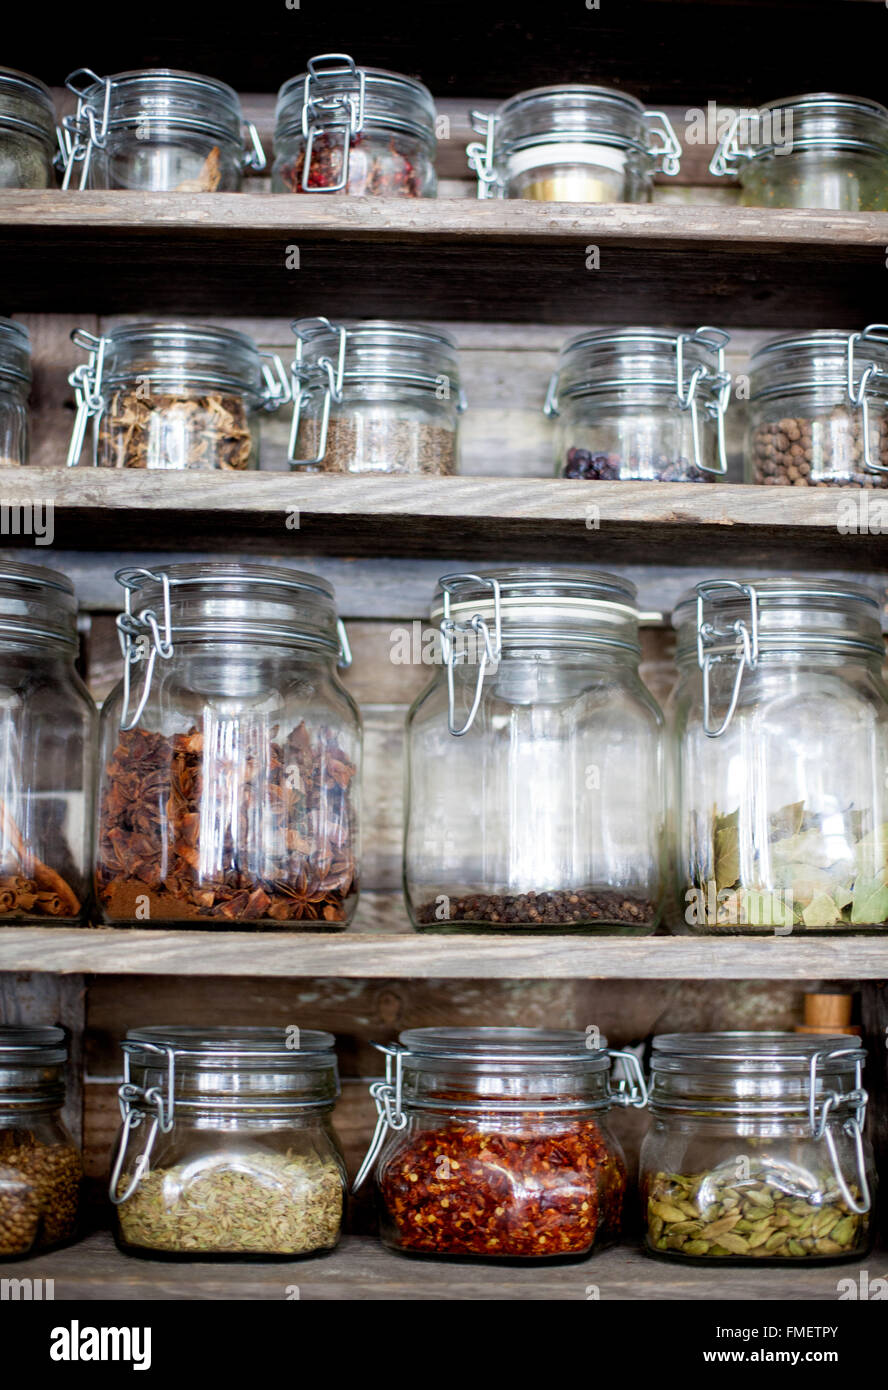 Spice jars of various sizes on a wooden shelf. - Stock Image